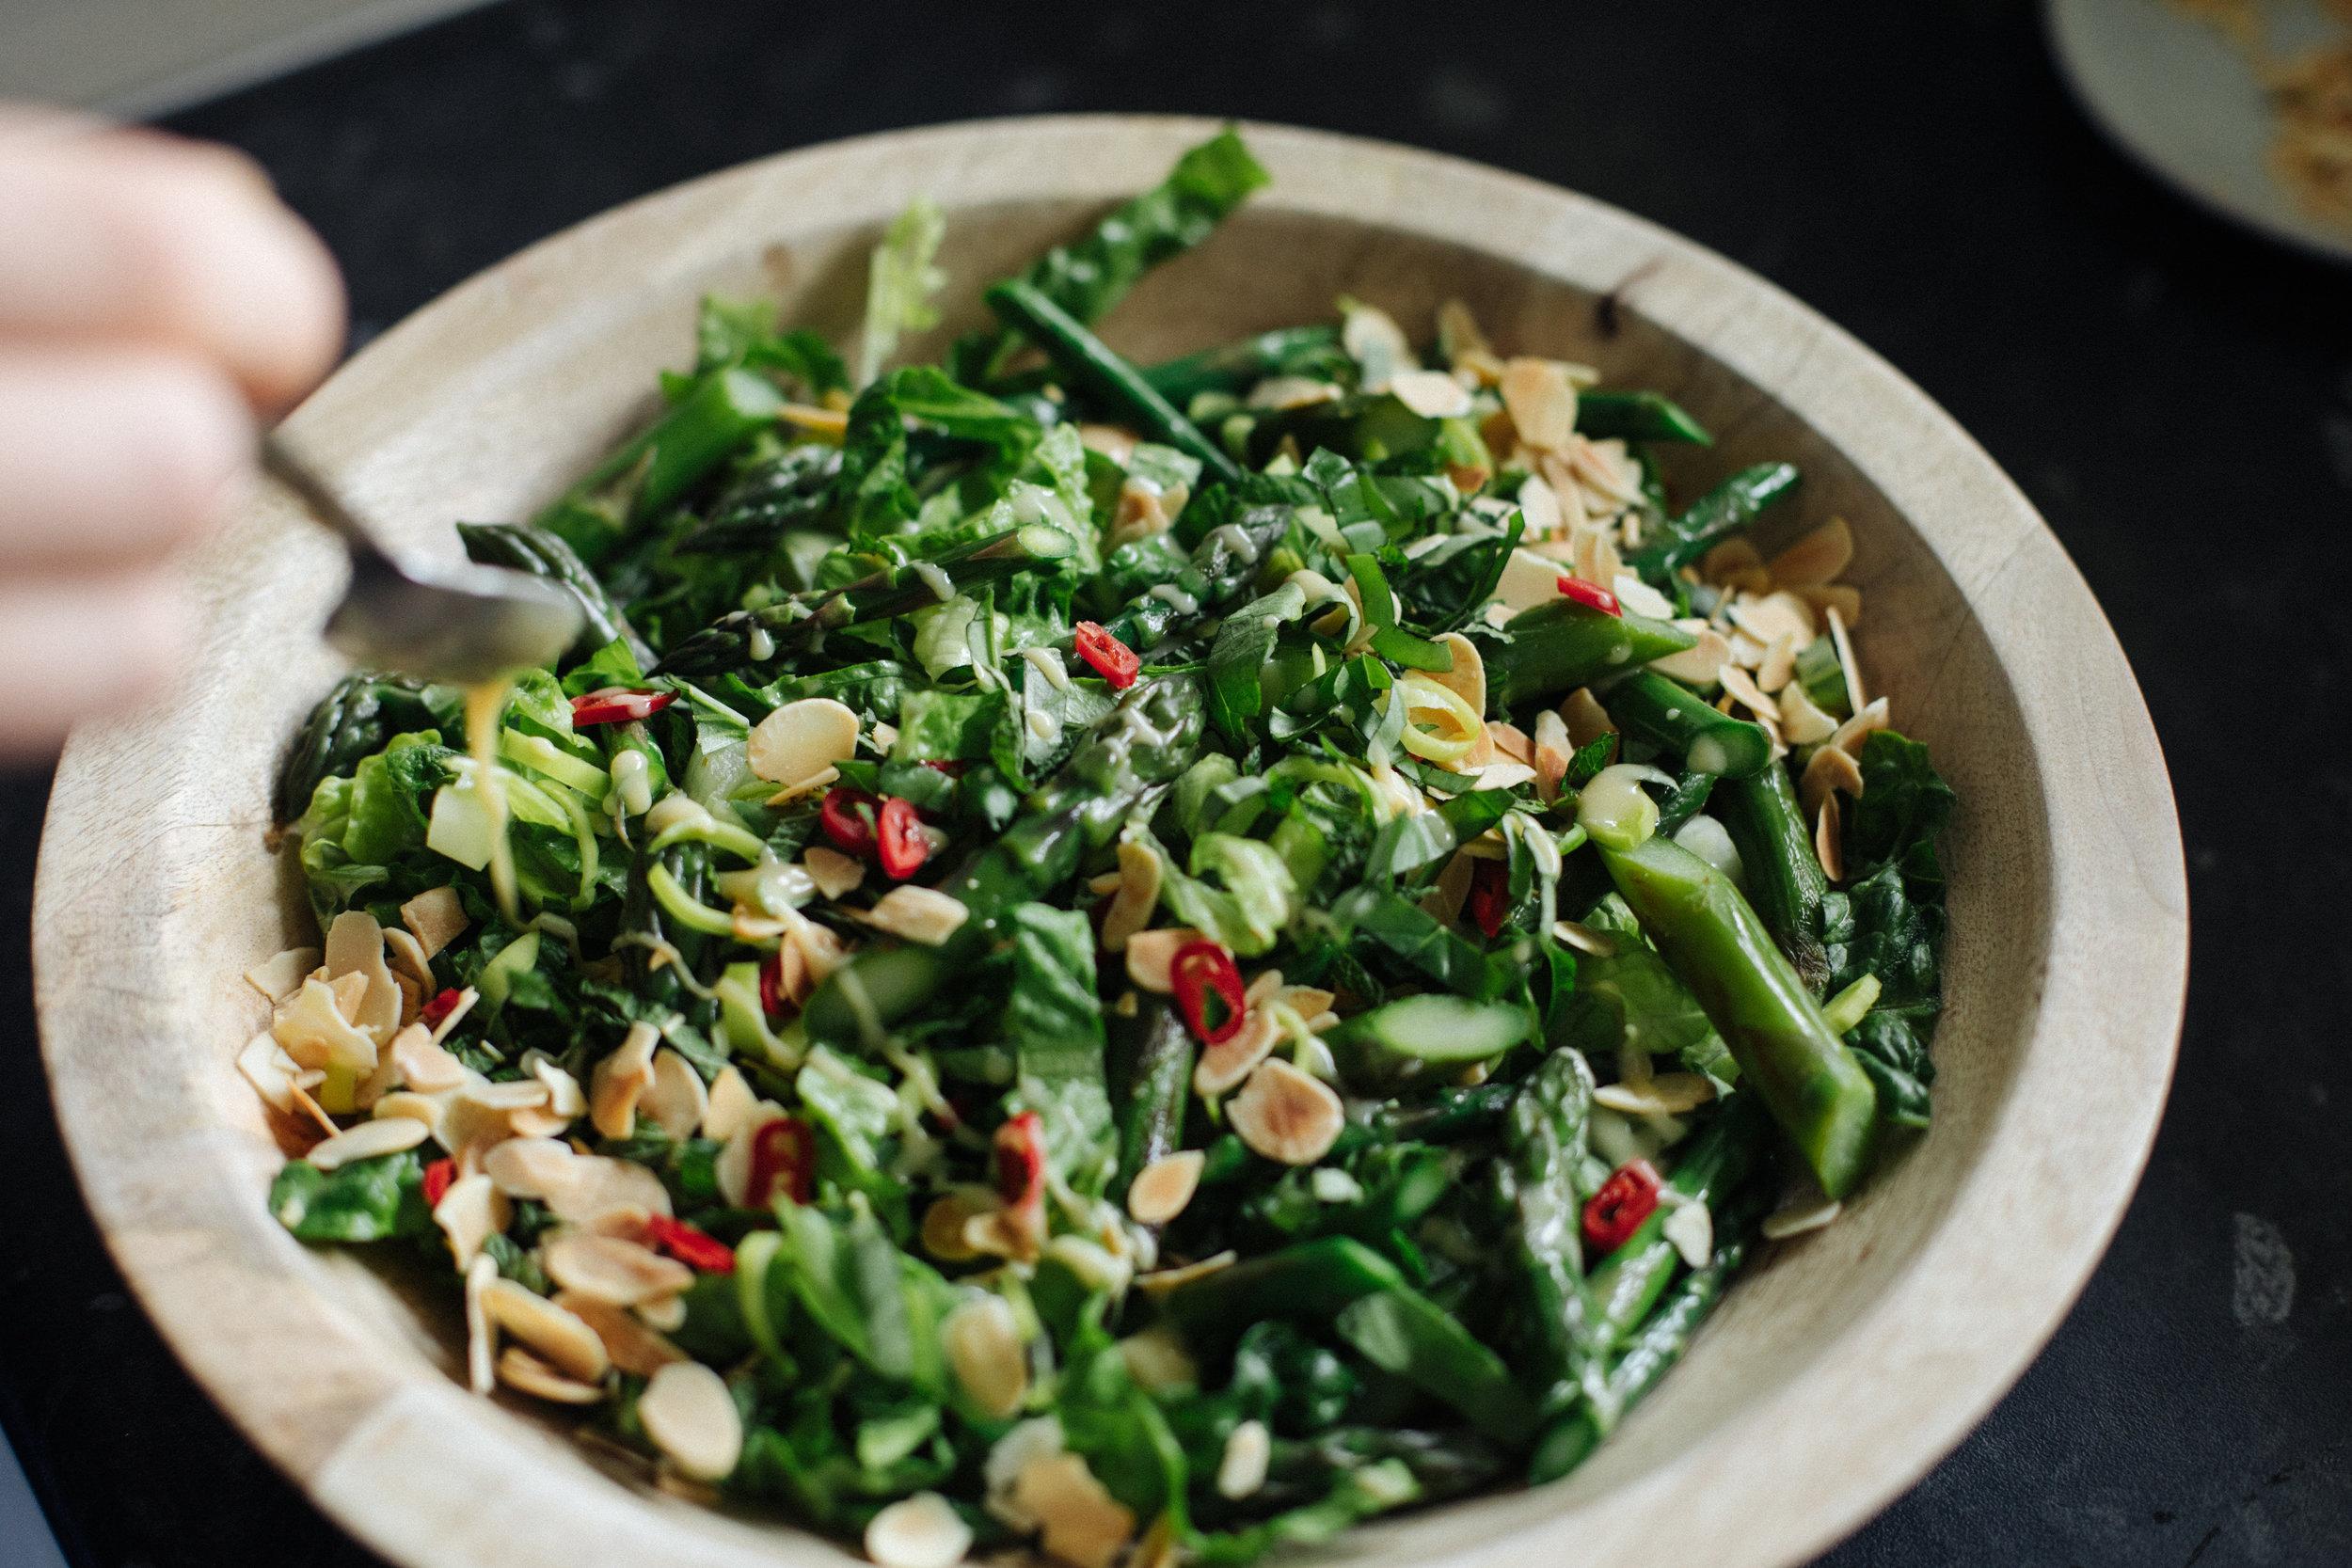 Assemble the salad in a serving bowl or plate. Drizzle lemon tahini dressing on top.